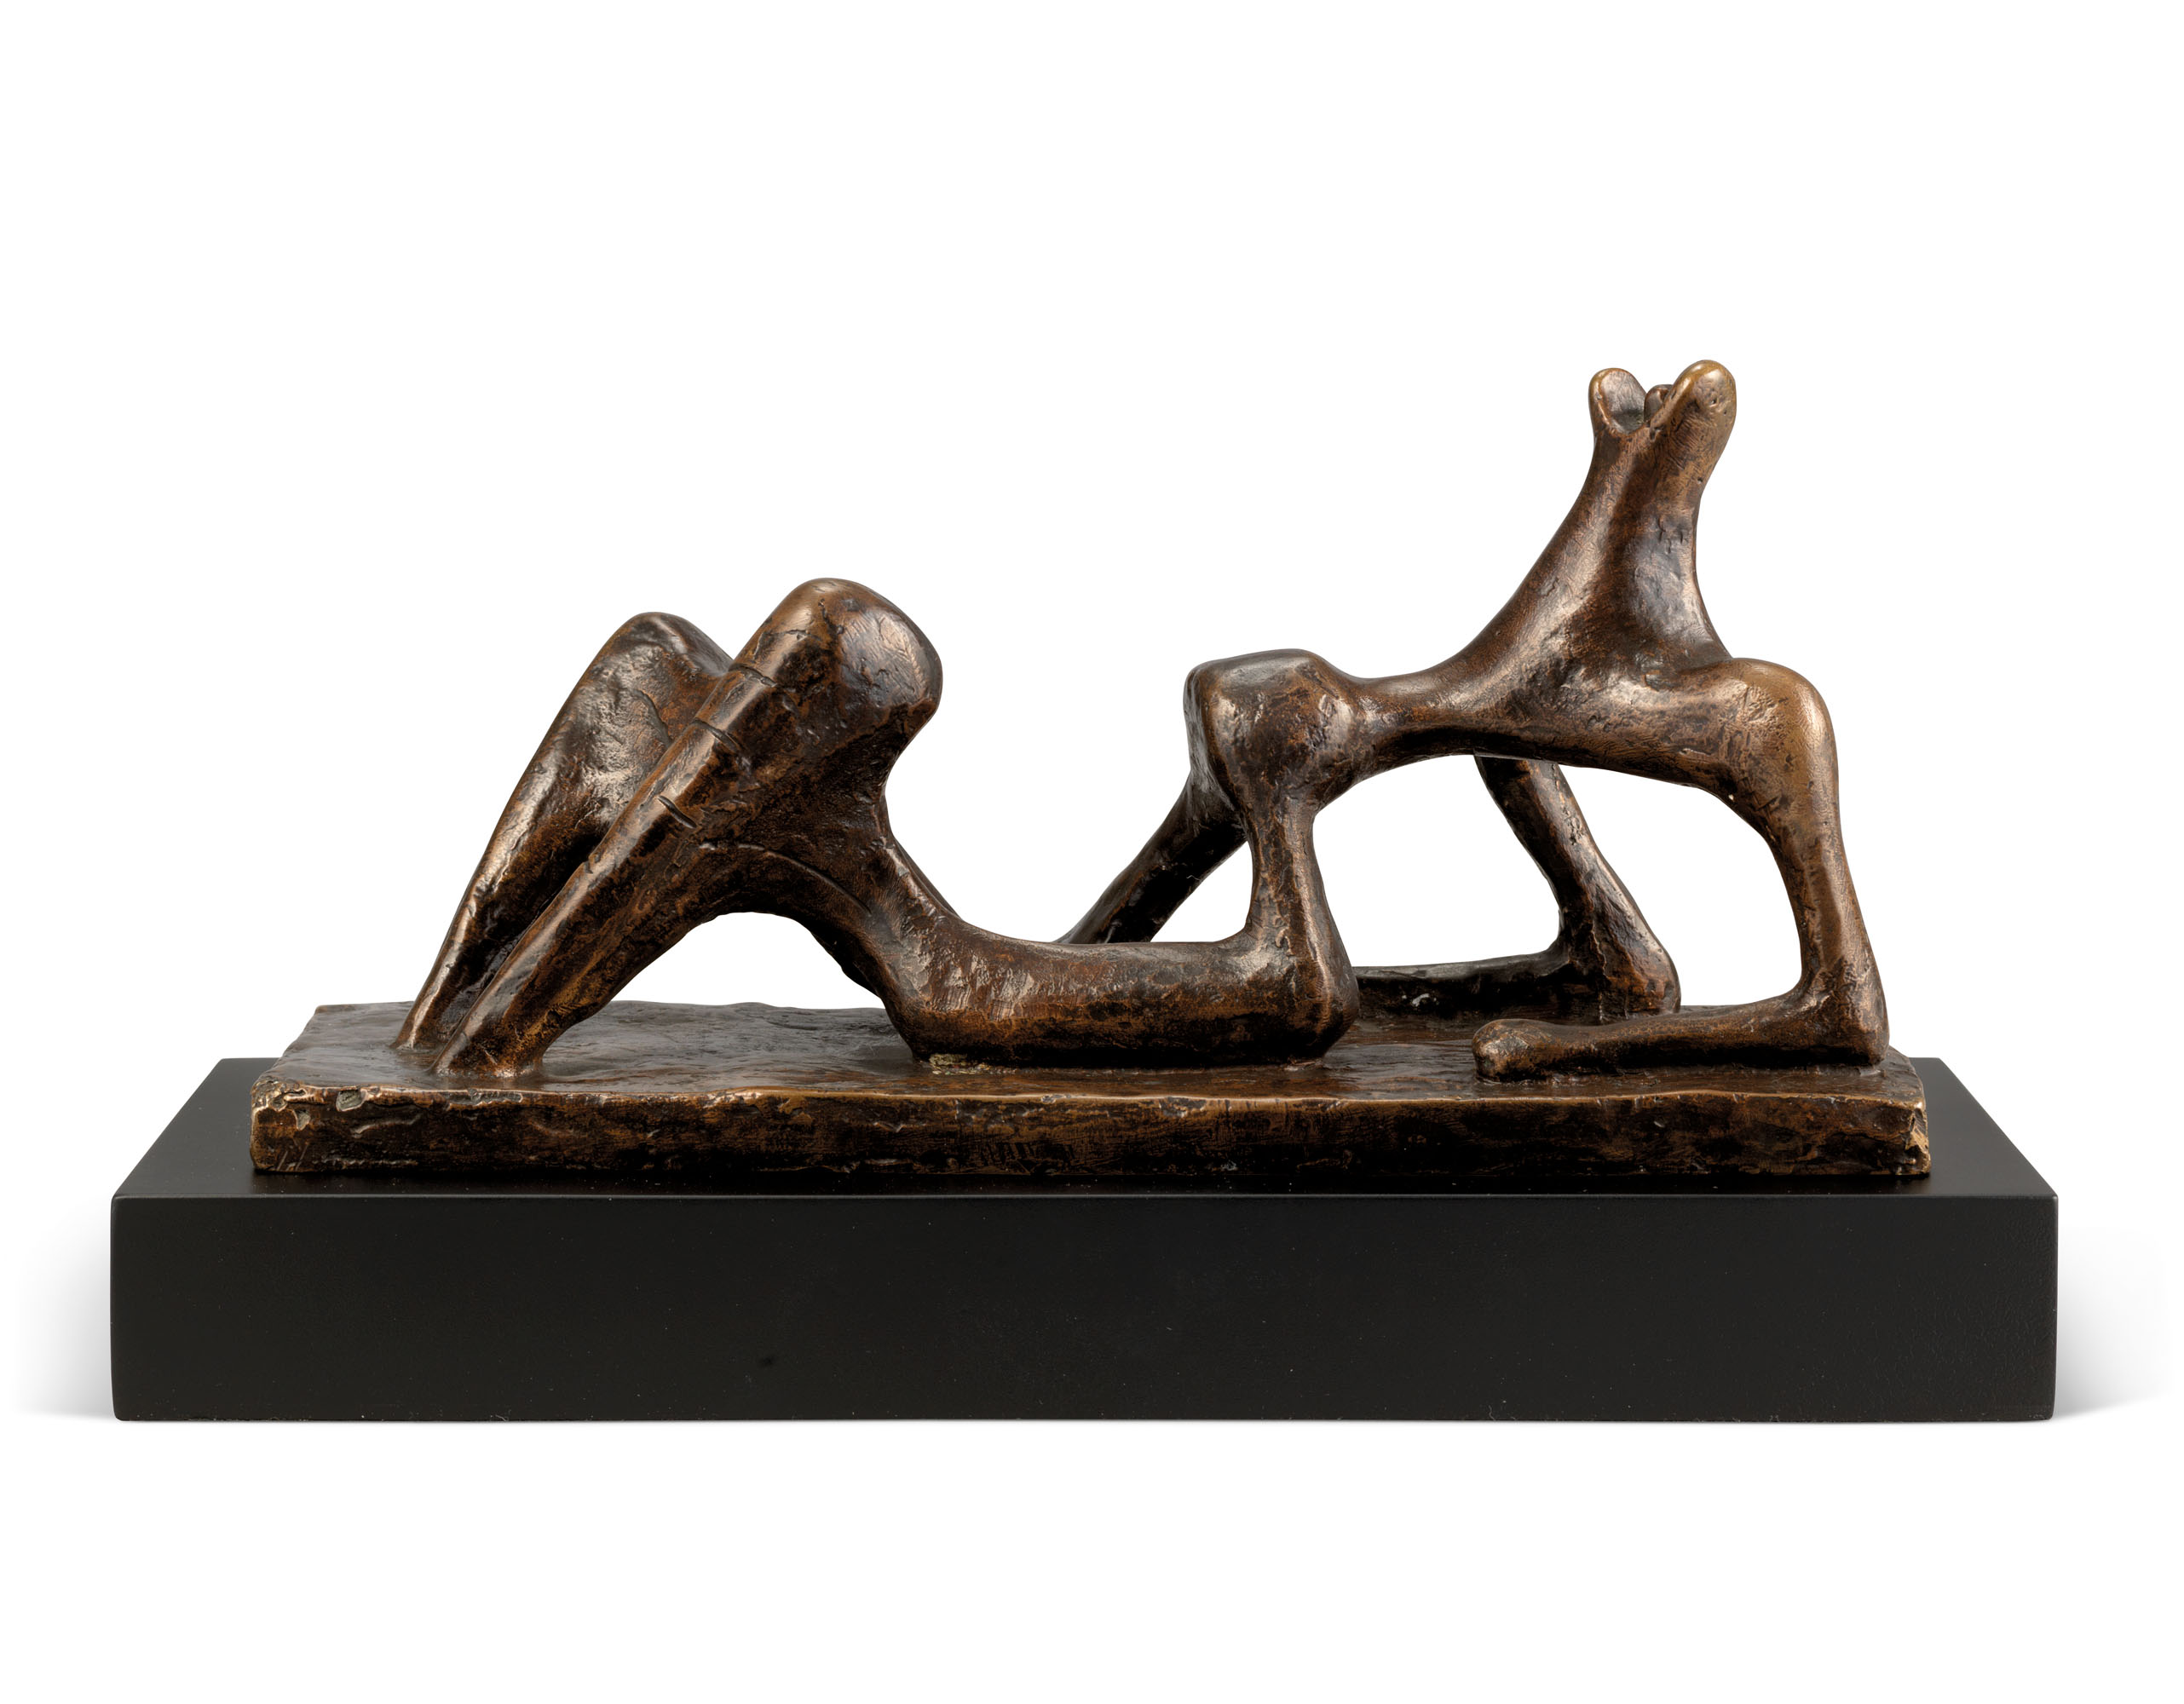 Henry Moore (1898-1986), Small Maquette No. 2 for Reclining Figure, conceived in 1950 and cast in 1965. Bronze with a dark brown patina. 9¼ in (23.5 cm) long. Estimate £200,000-300,000. Offered inModern British Art Evening Saleon1 March at Christie's in London